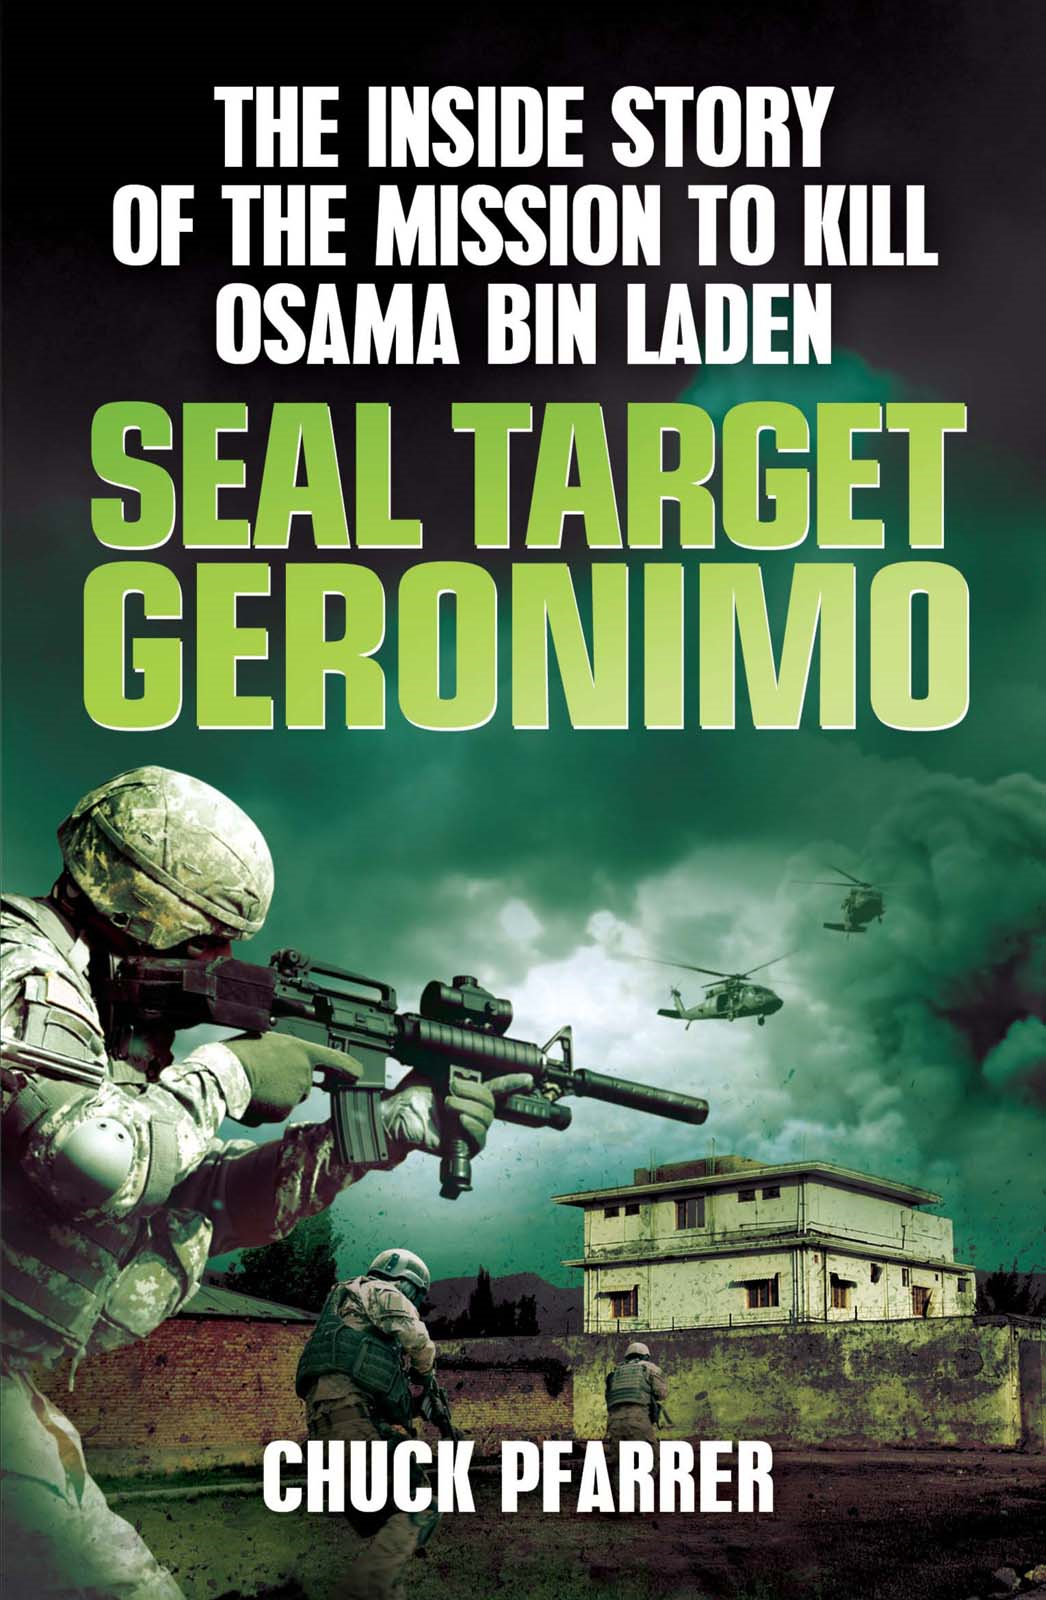 SEAL Target Geronimo The Inside Story of the Mission to Kill Osama Bin Laden